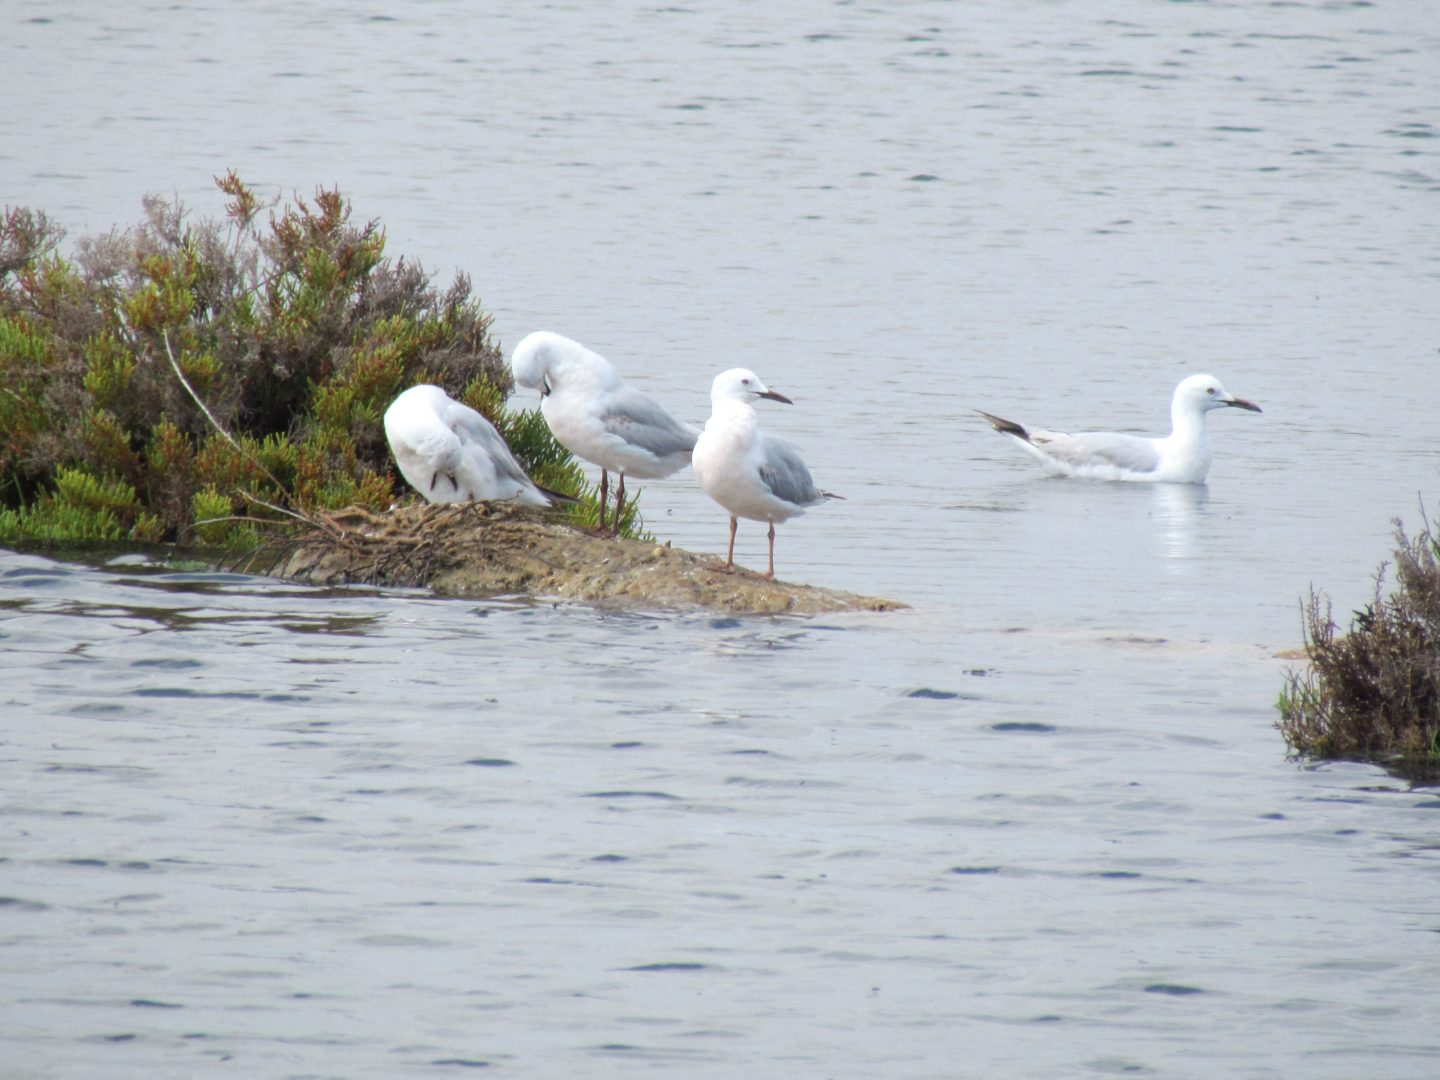 Slender-billed Gulls resting and swimming